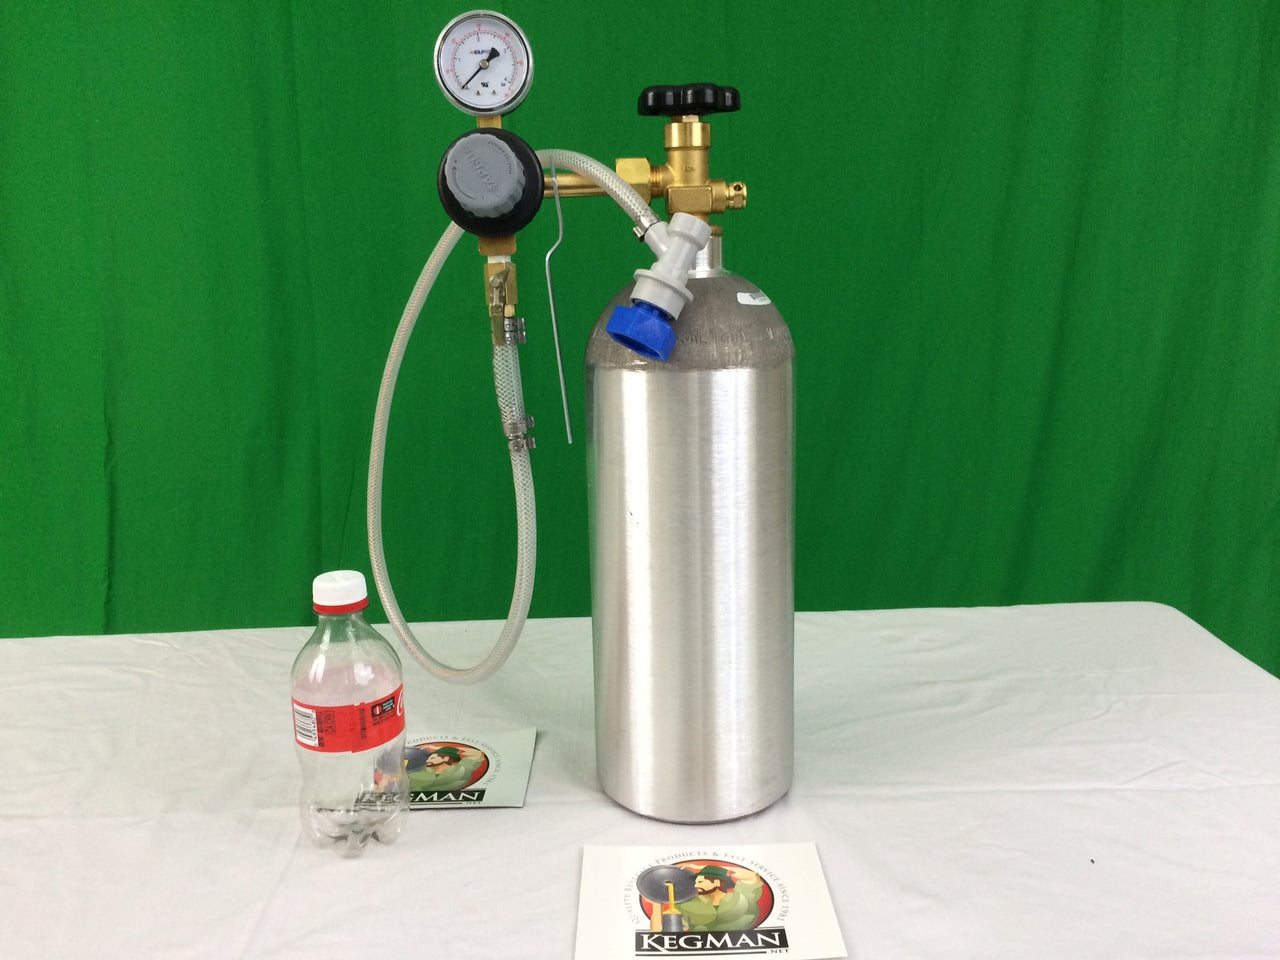 Seltzer Making Bottling Kit, Single regulator